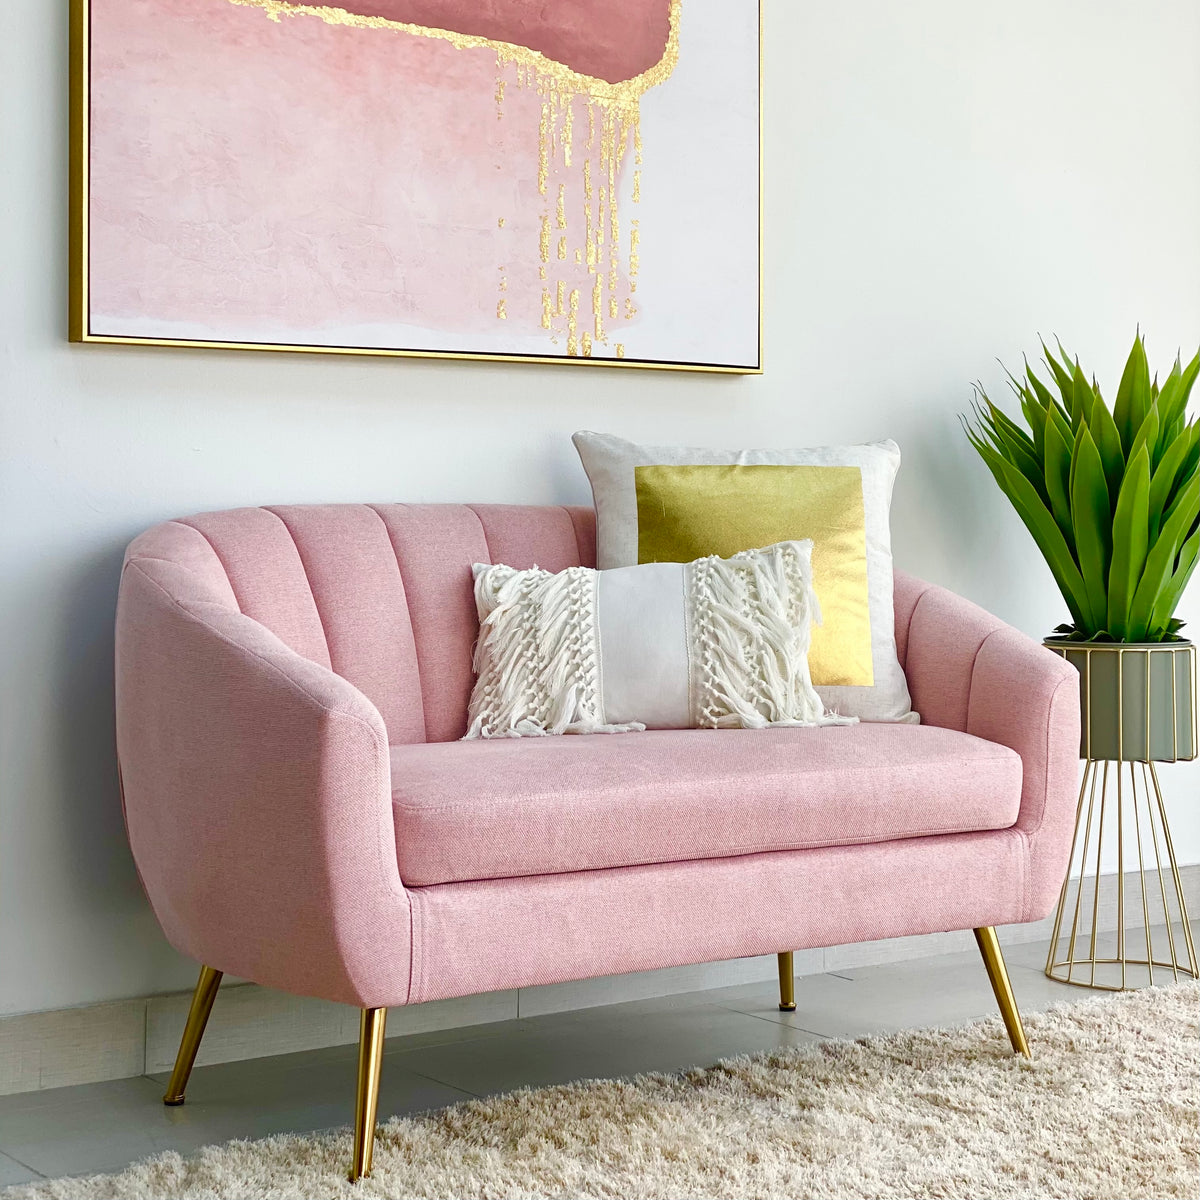 Ambar Pink Fabric LoveSeat